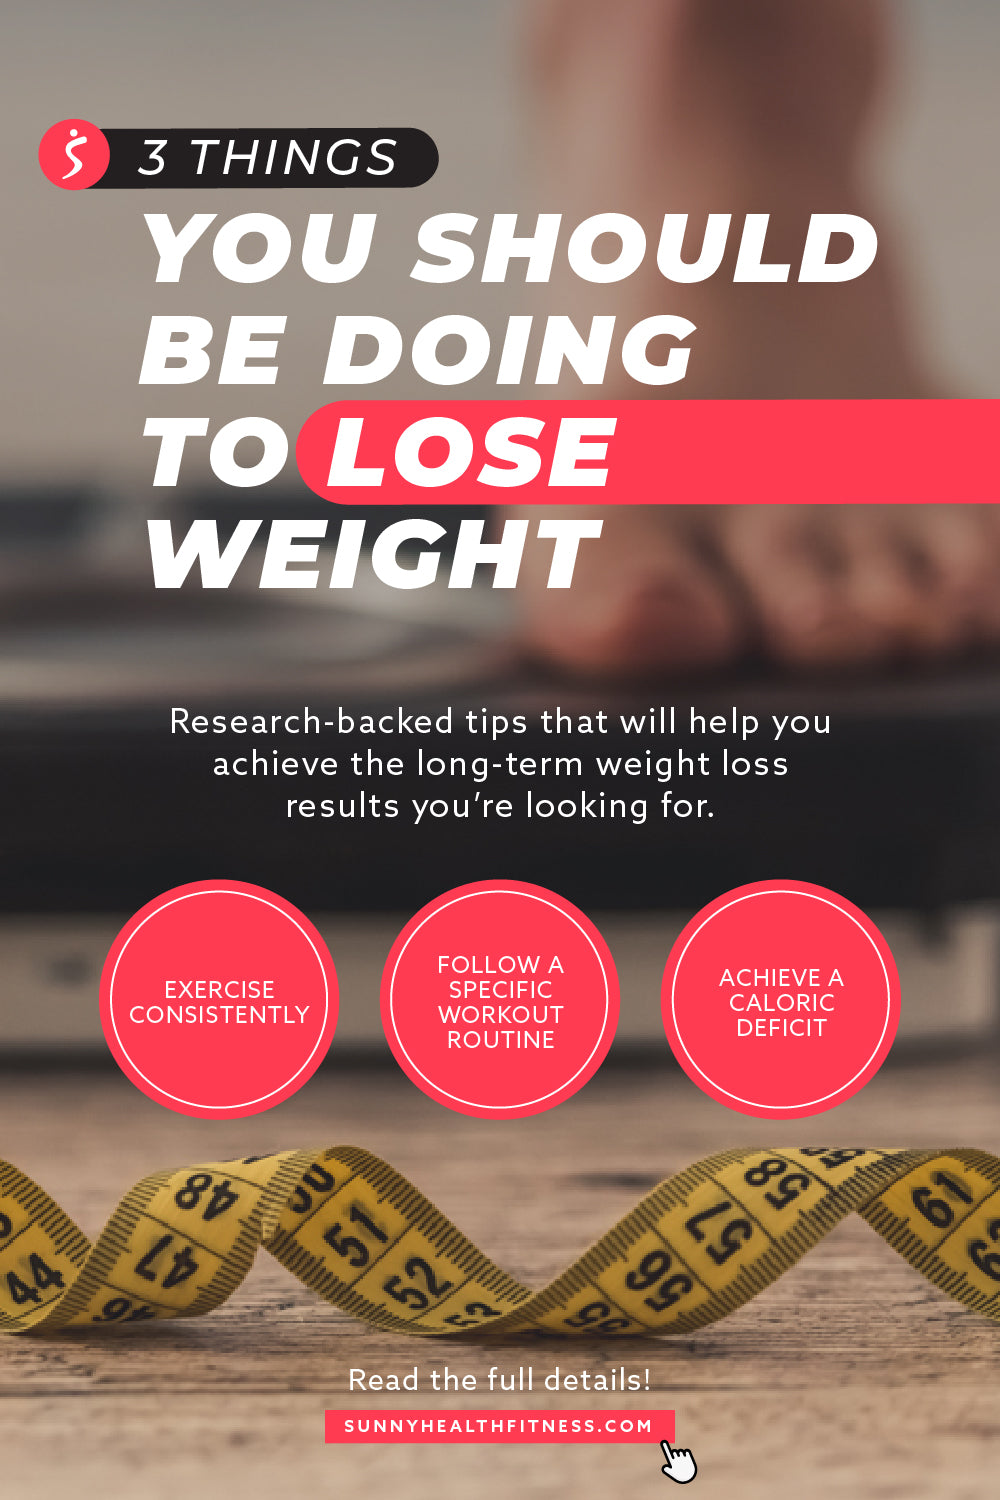 3 Things to Lose Weight Infographic